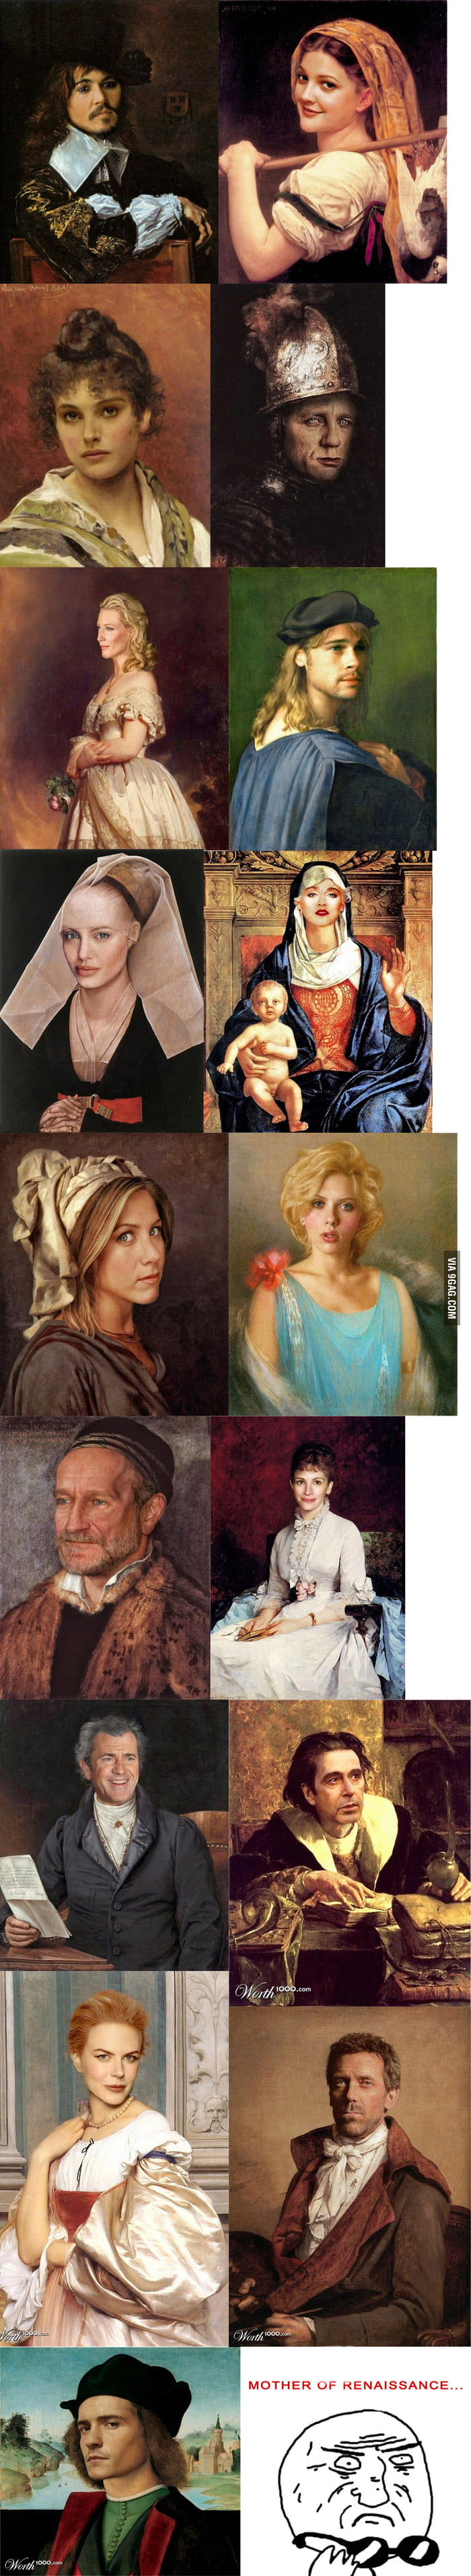 Fan of Renaissance?